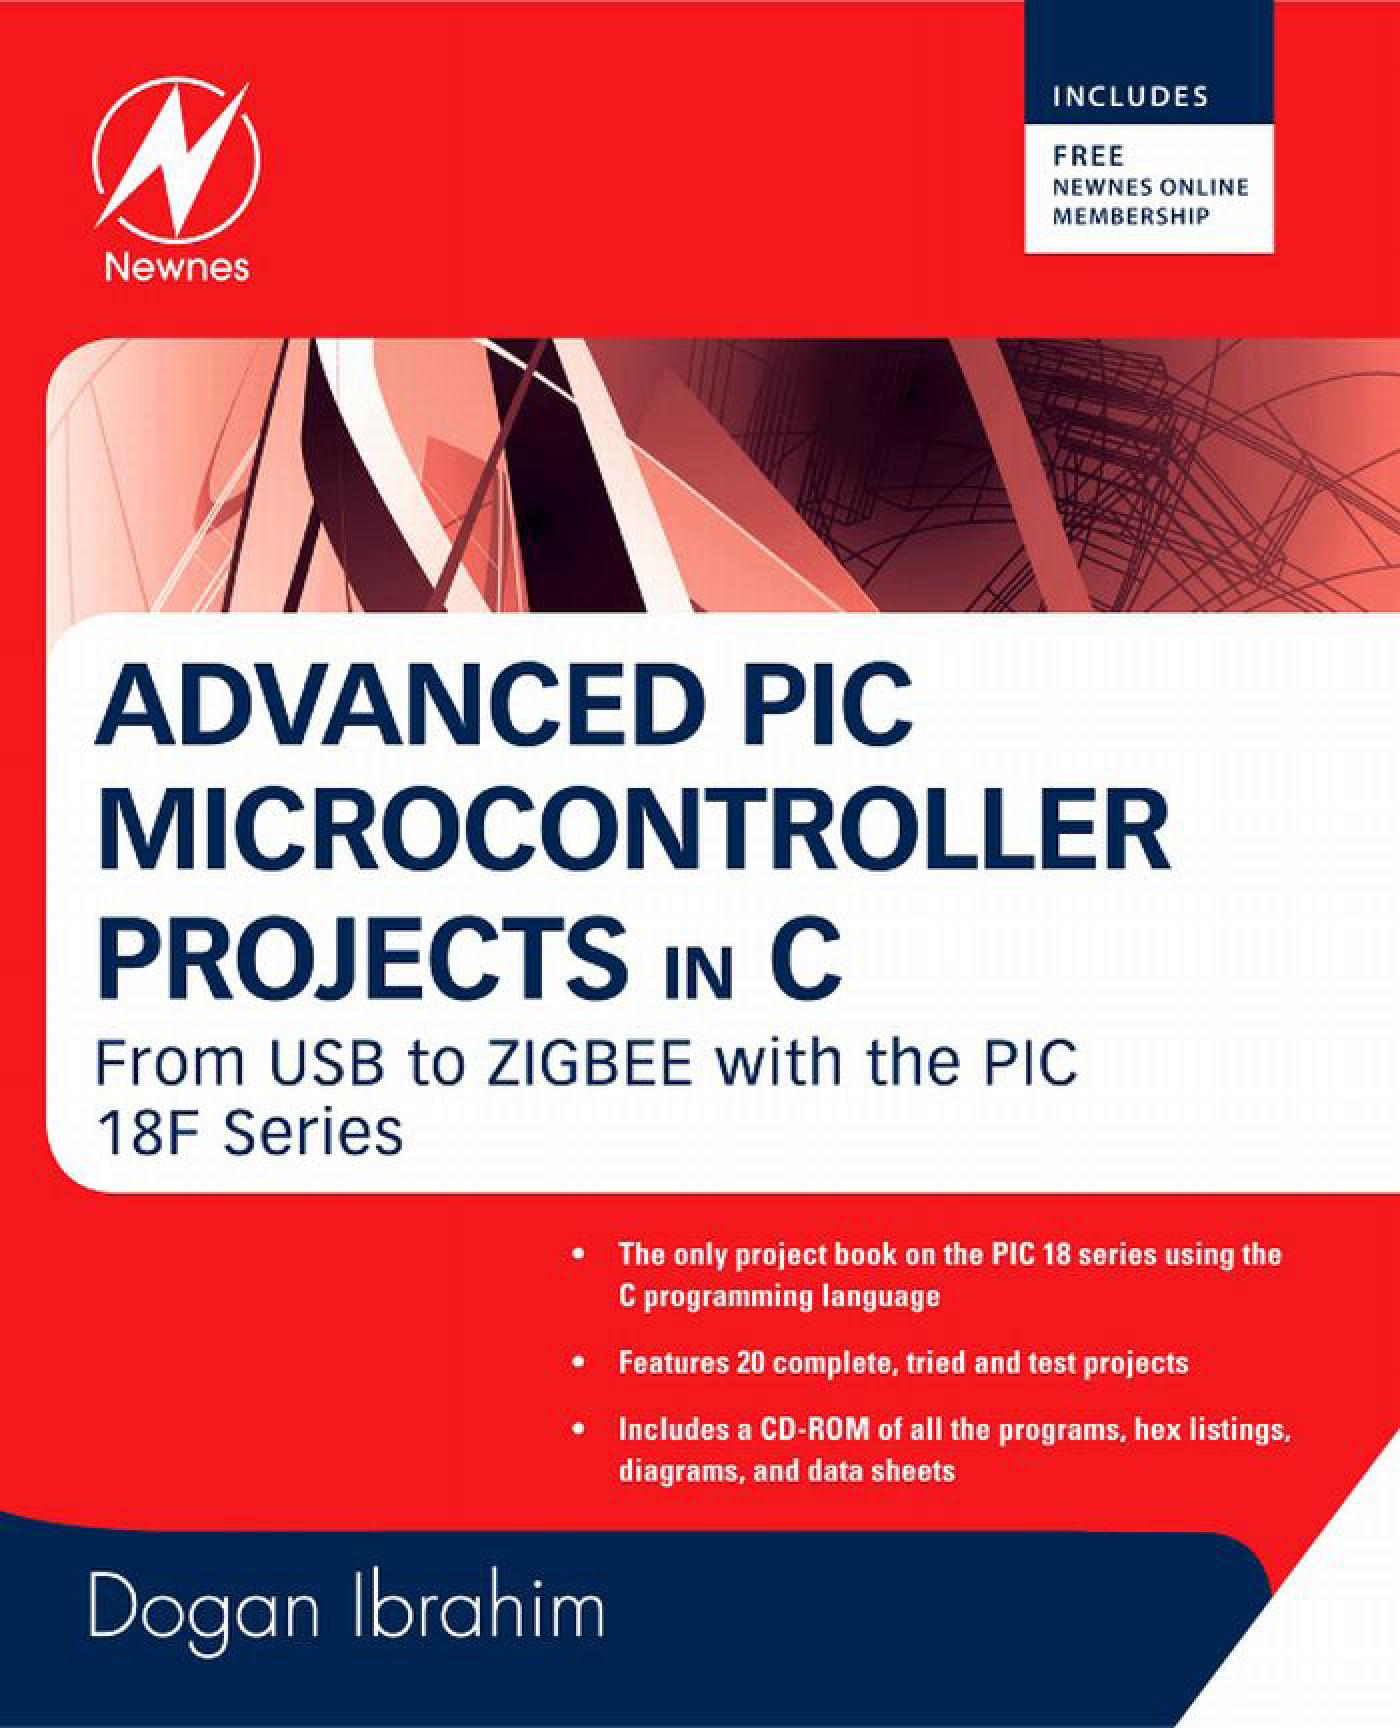 Advanced PIC Microcontroller Projects in C: From USB to RTOS with the PIC 18F Series